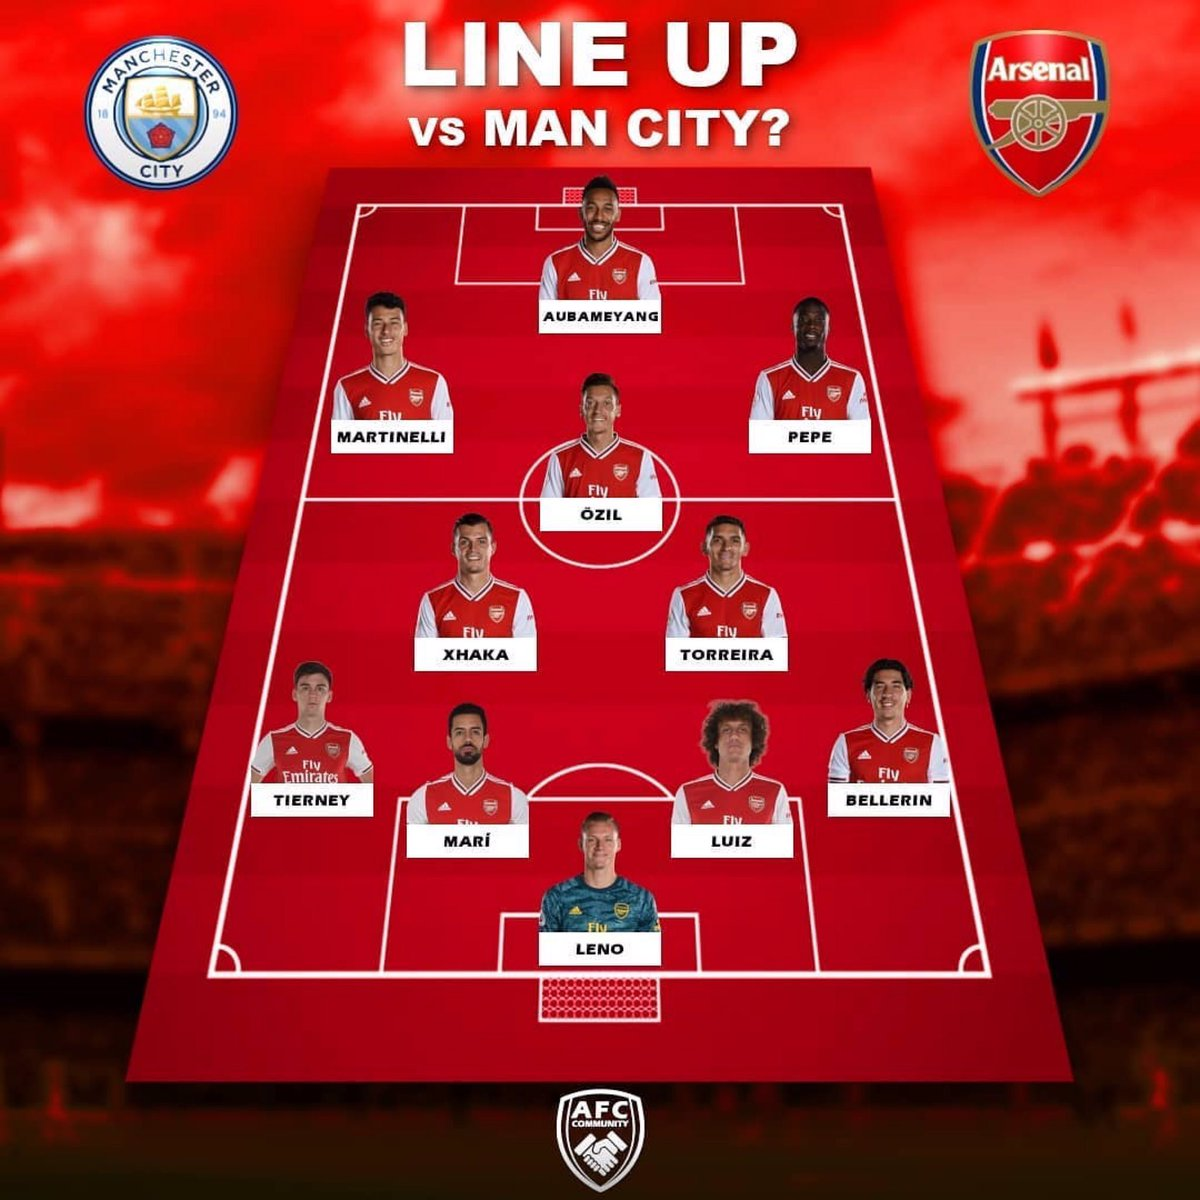 Line up vs Man City?!  Yes/No?   #Arsenal #ManCity #Football #PremierLeague pic.twitter.com/Lj8ErKwT2q